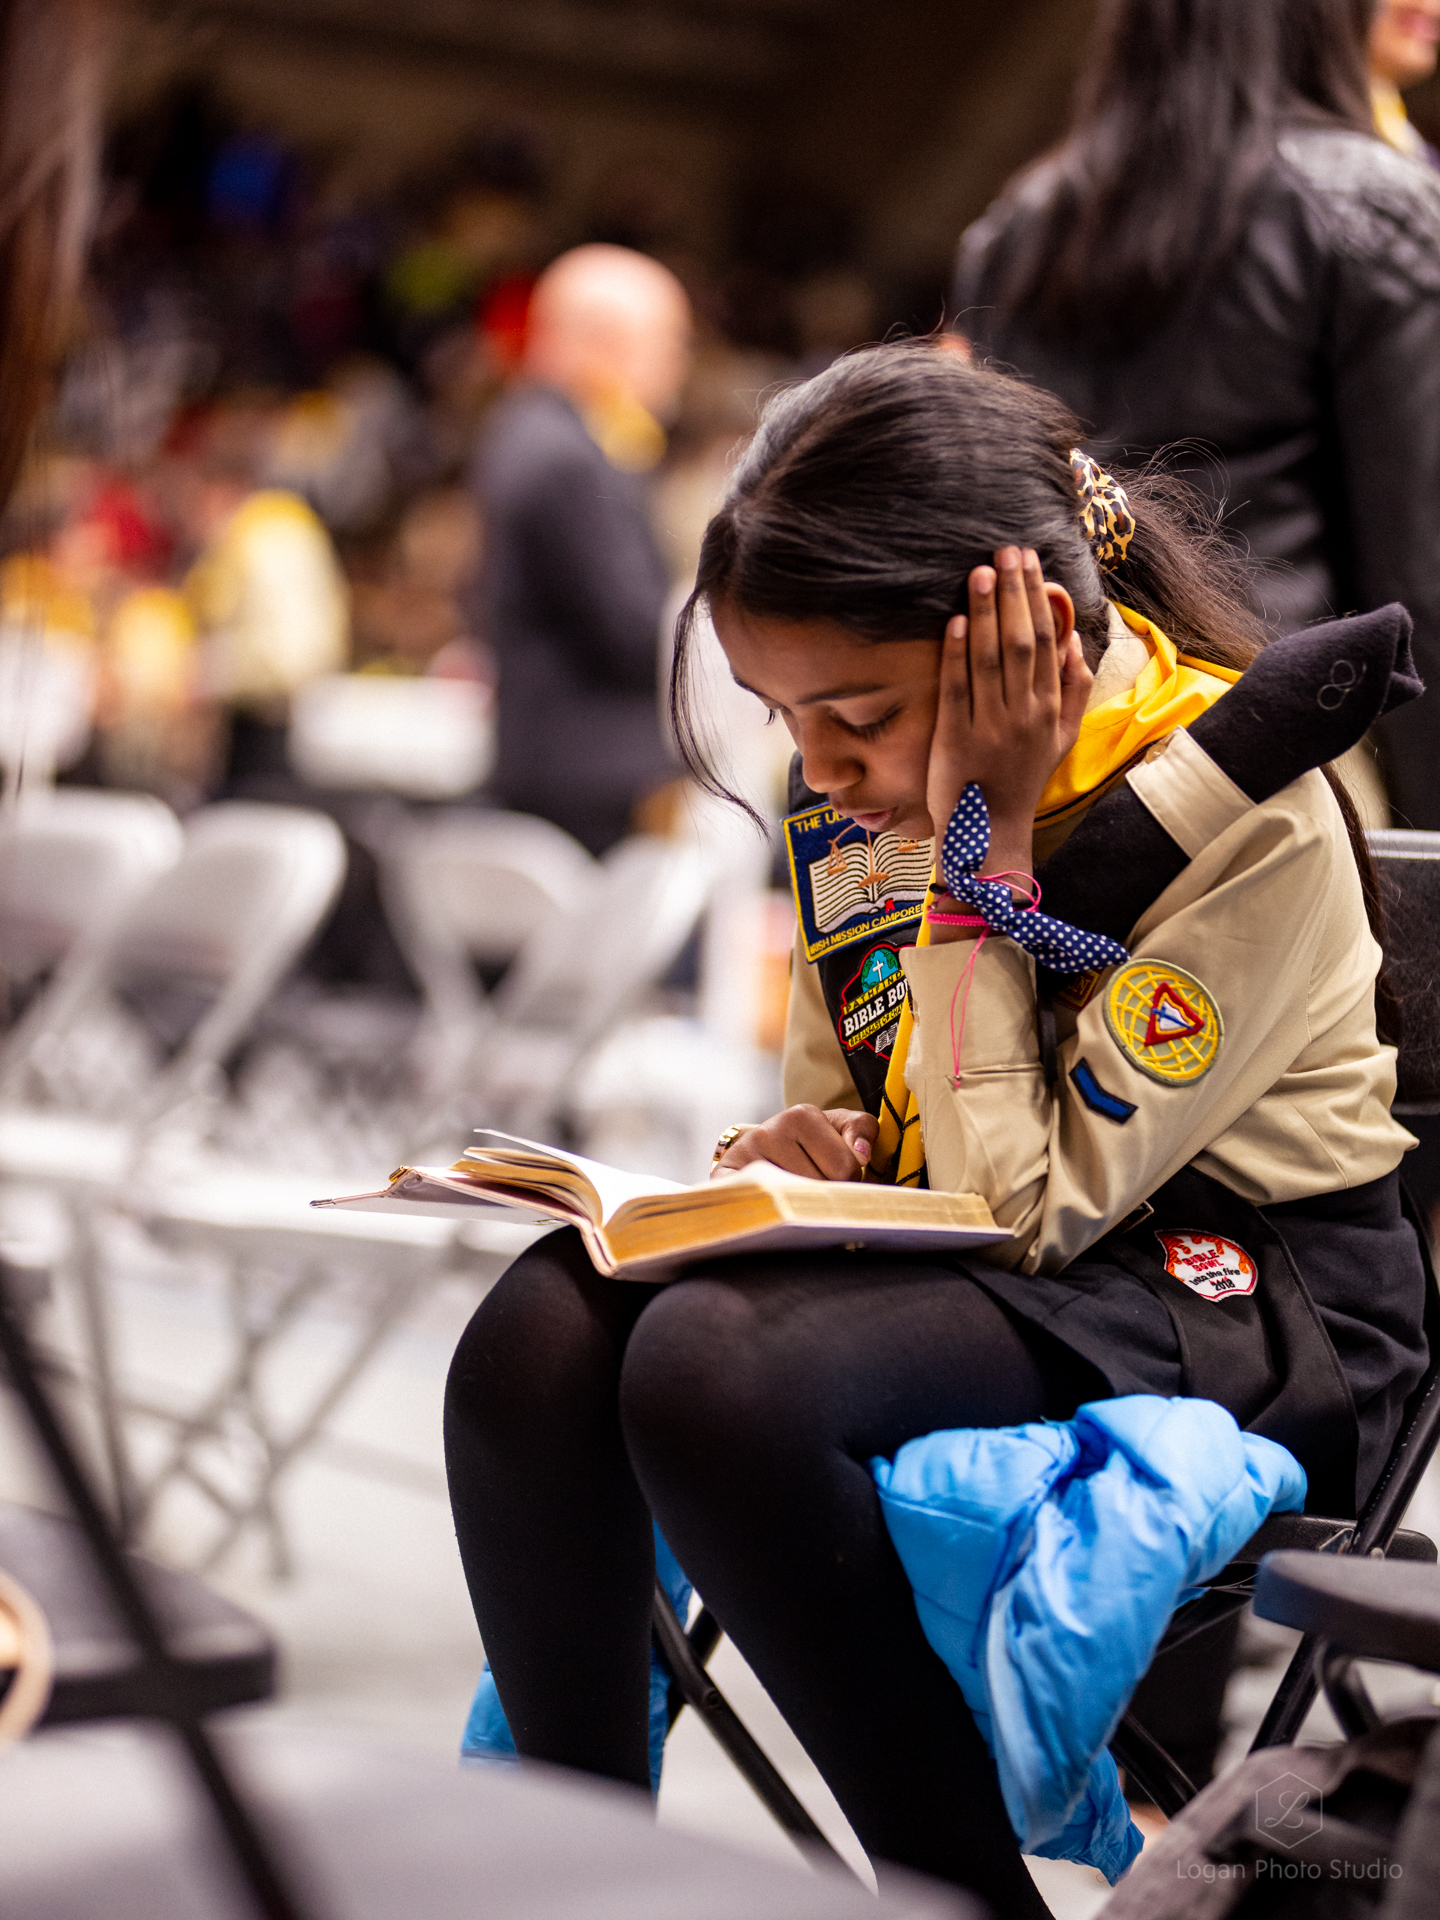 A pathfinder takes a moment to read the Bible.